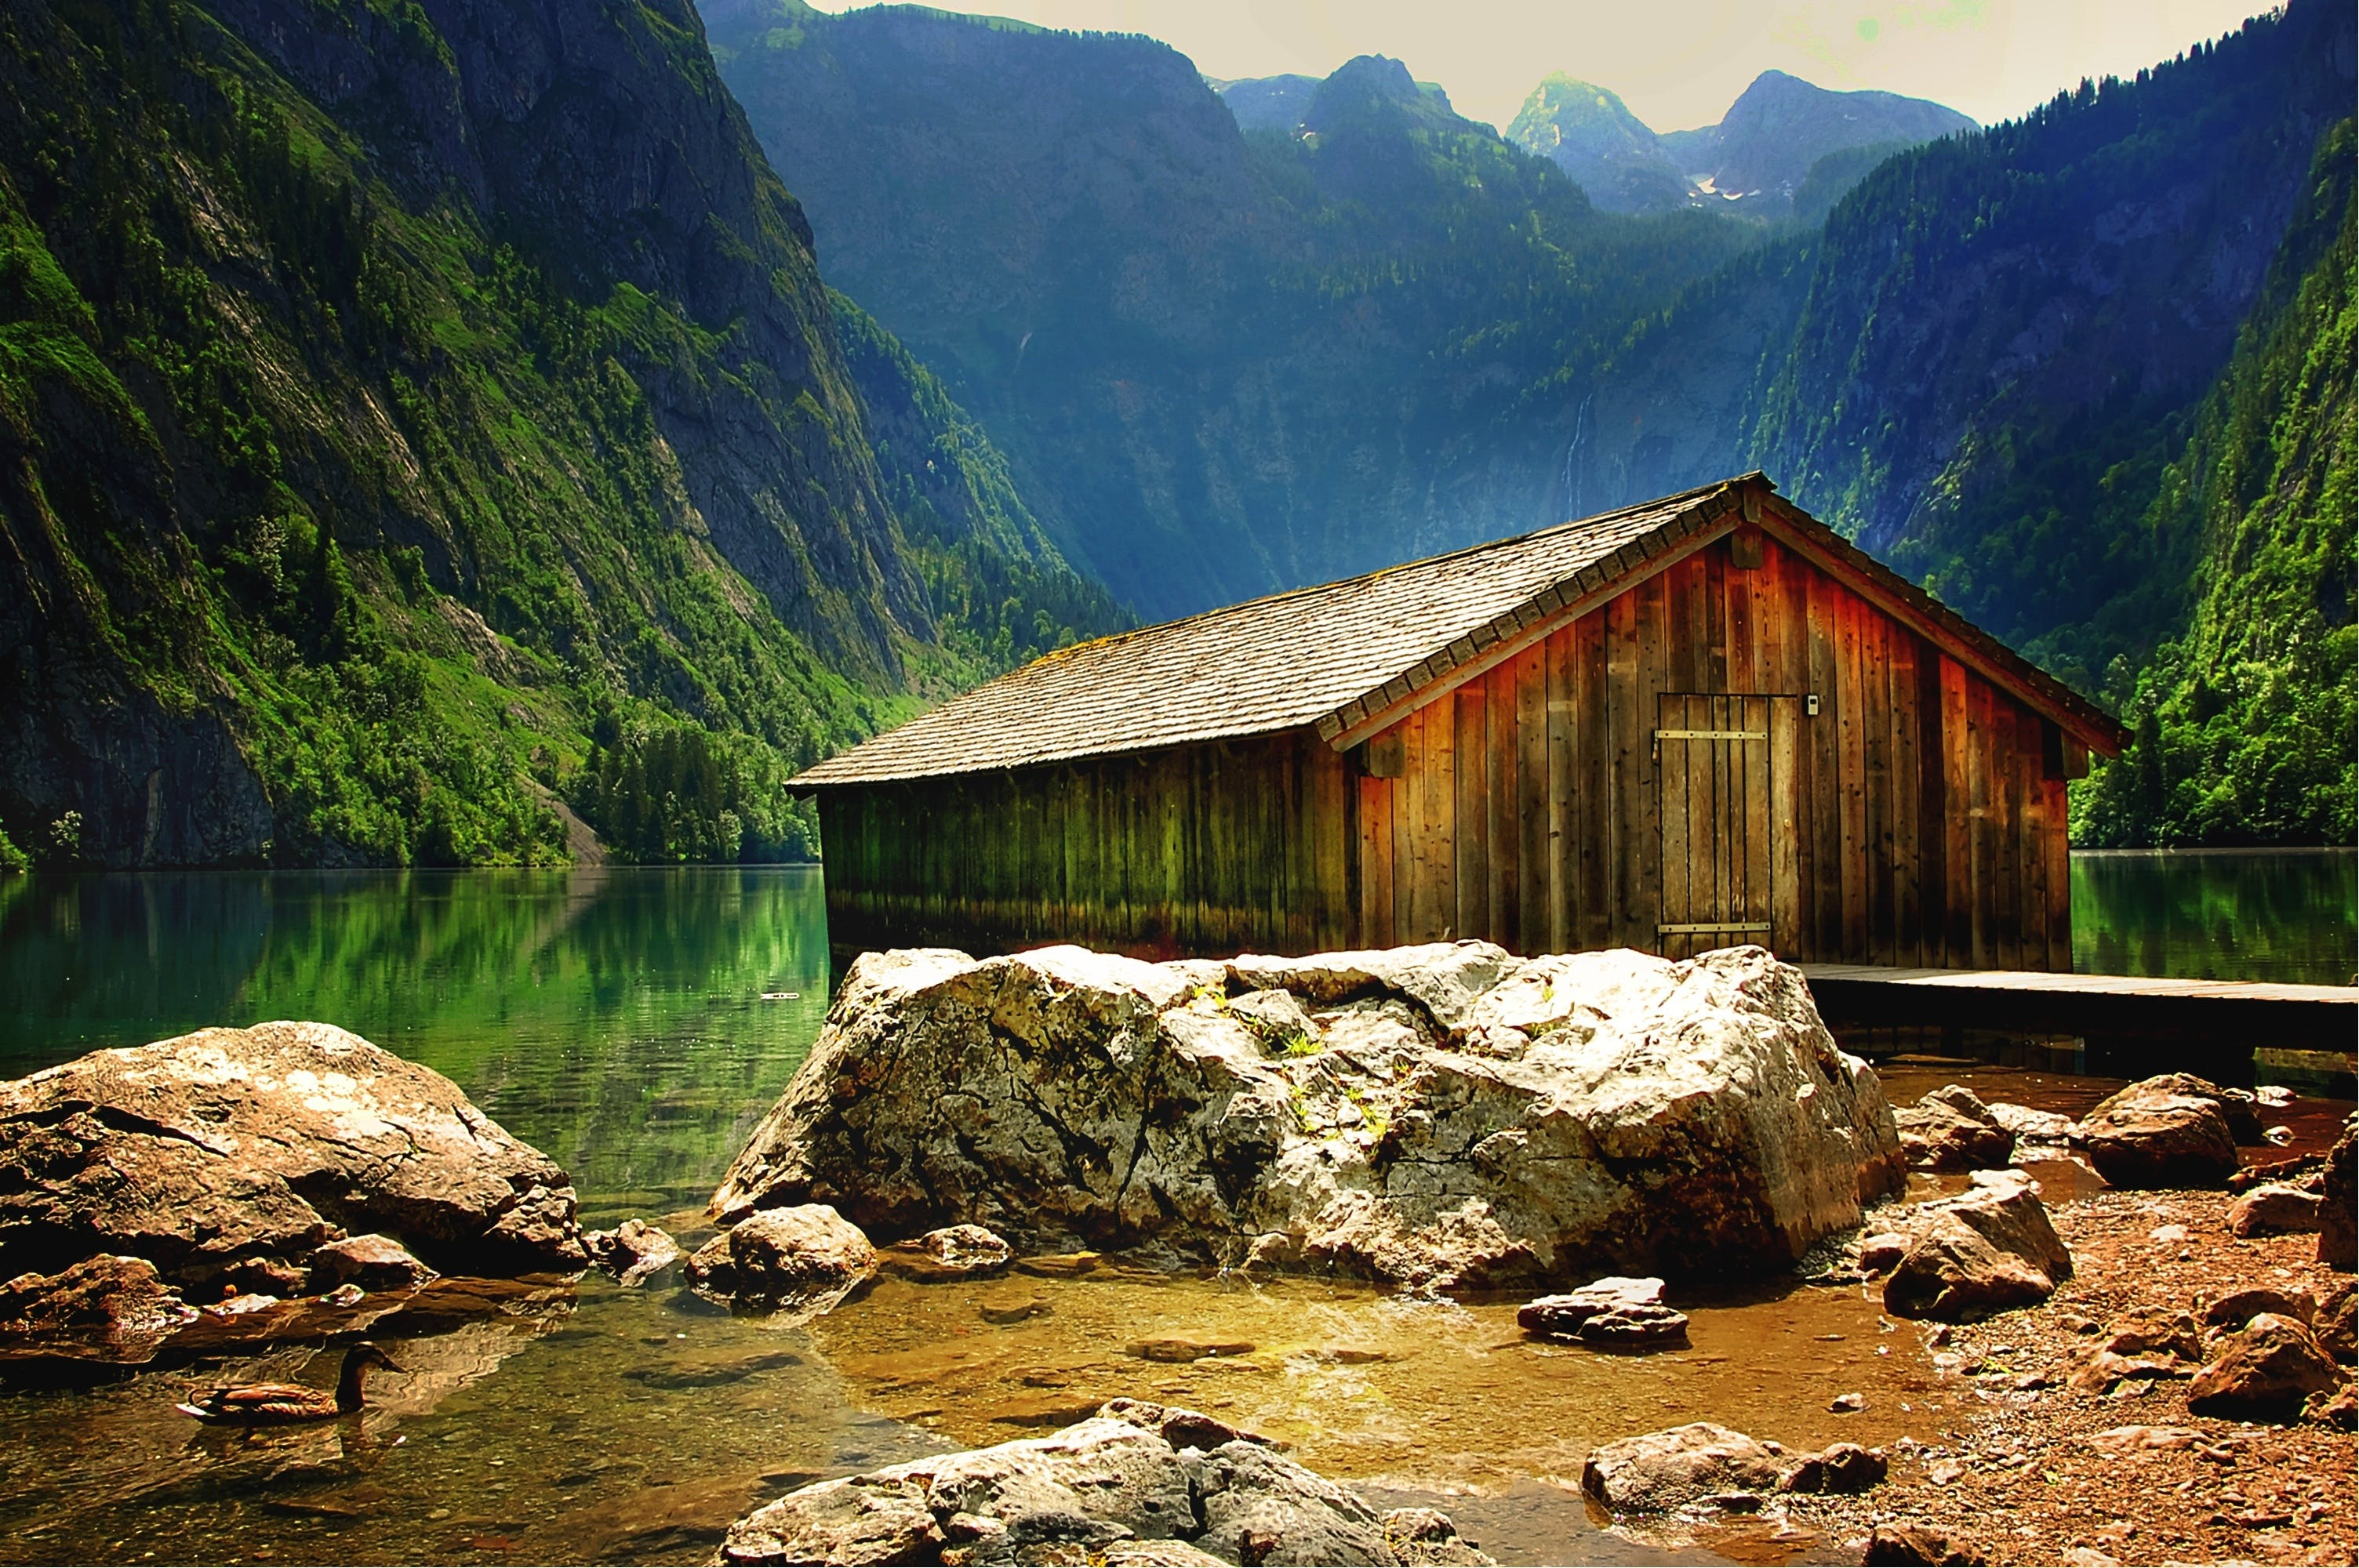 Brown Wooden House Near at Body of Water